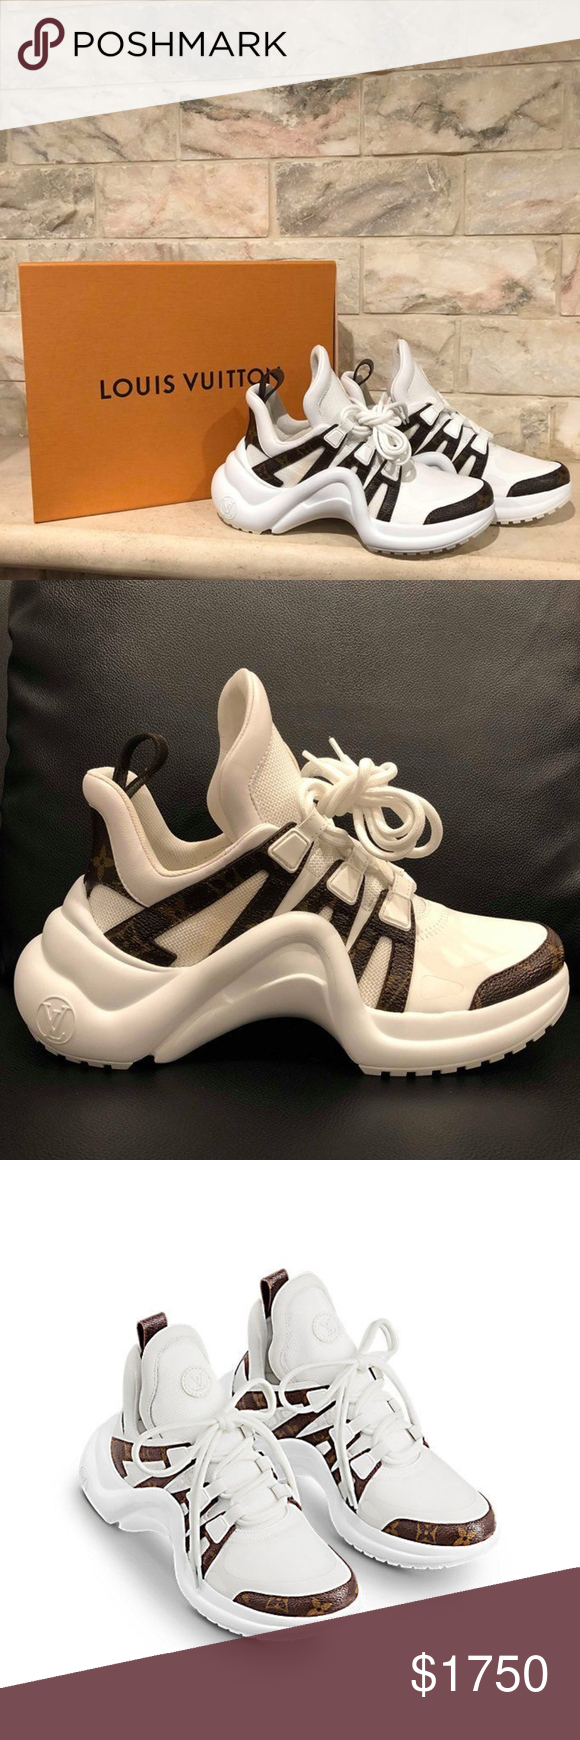 a8b6eb327d45 Training Shoes · Louis Vuitton LV Archlight White Monogram Lace Louis  Vuitton LV Archlight White Monogram Lace Logo Flat